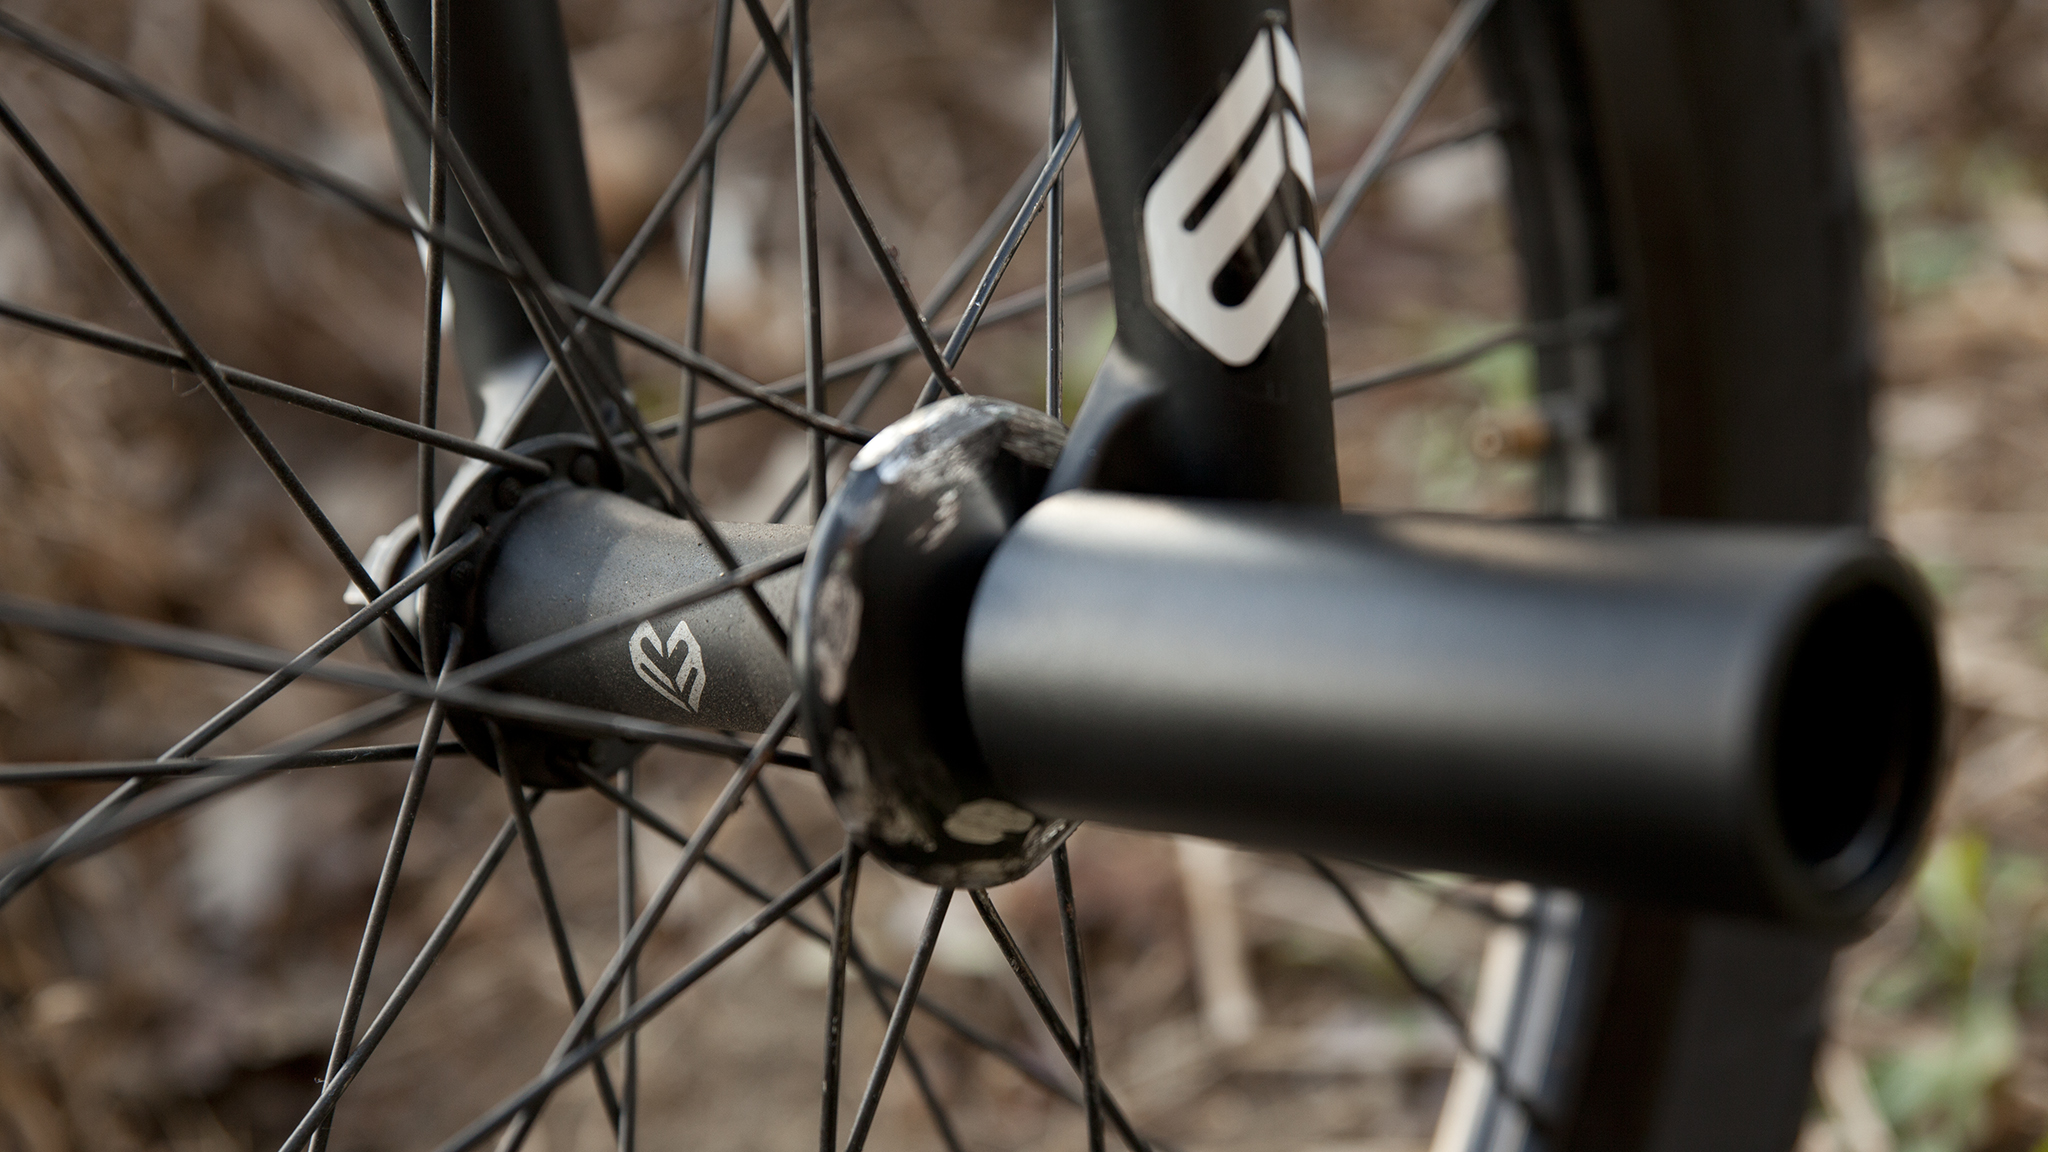 Tocco's wheels are built up by clat, while his pegs are supplied by Kink.